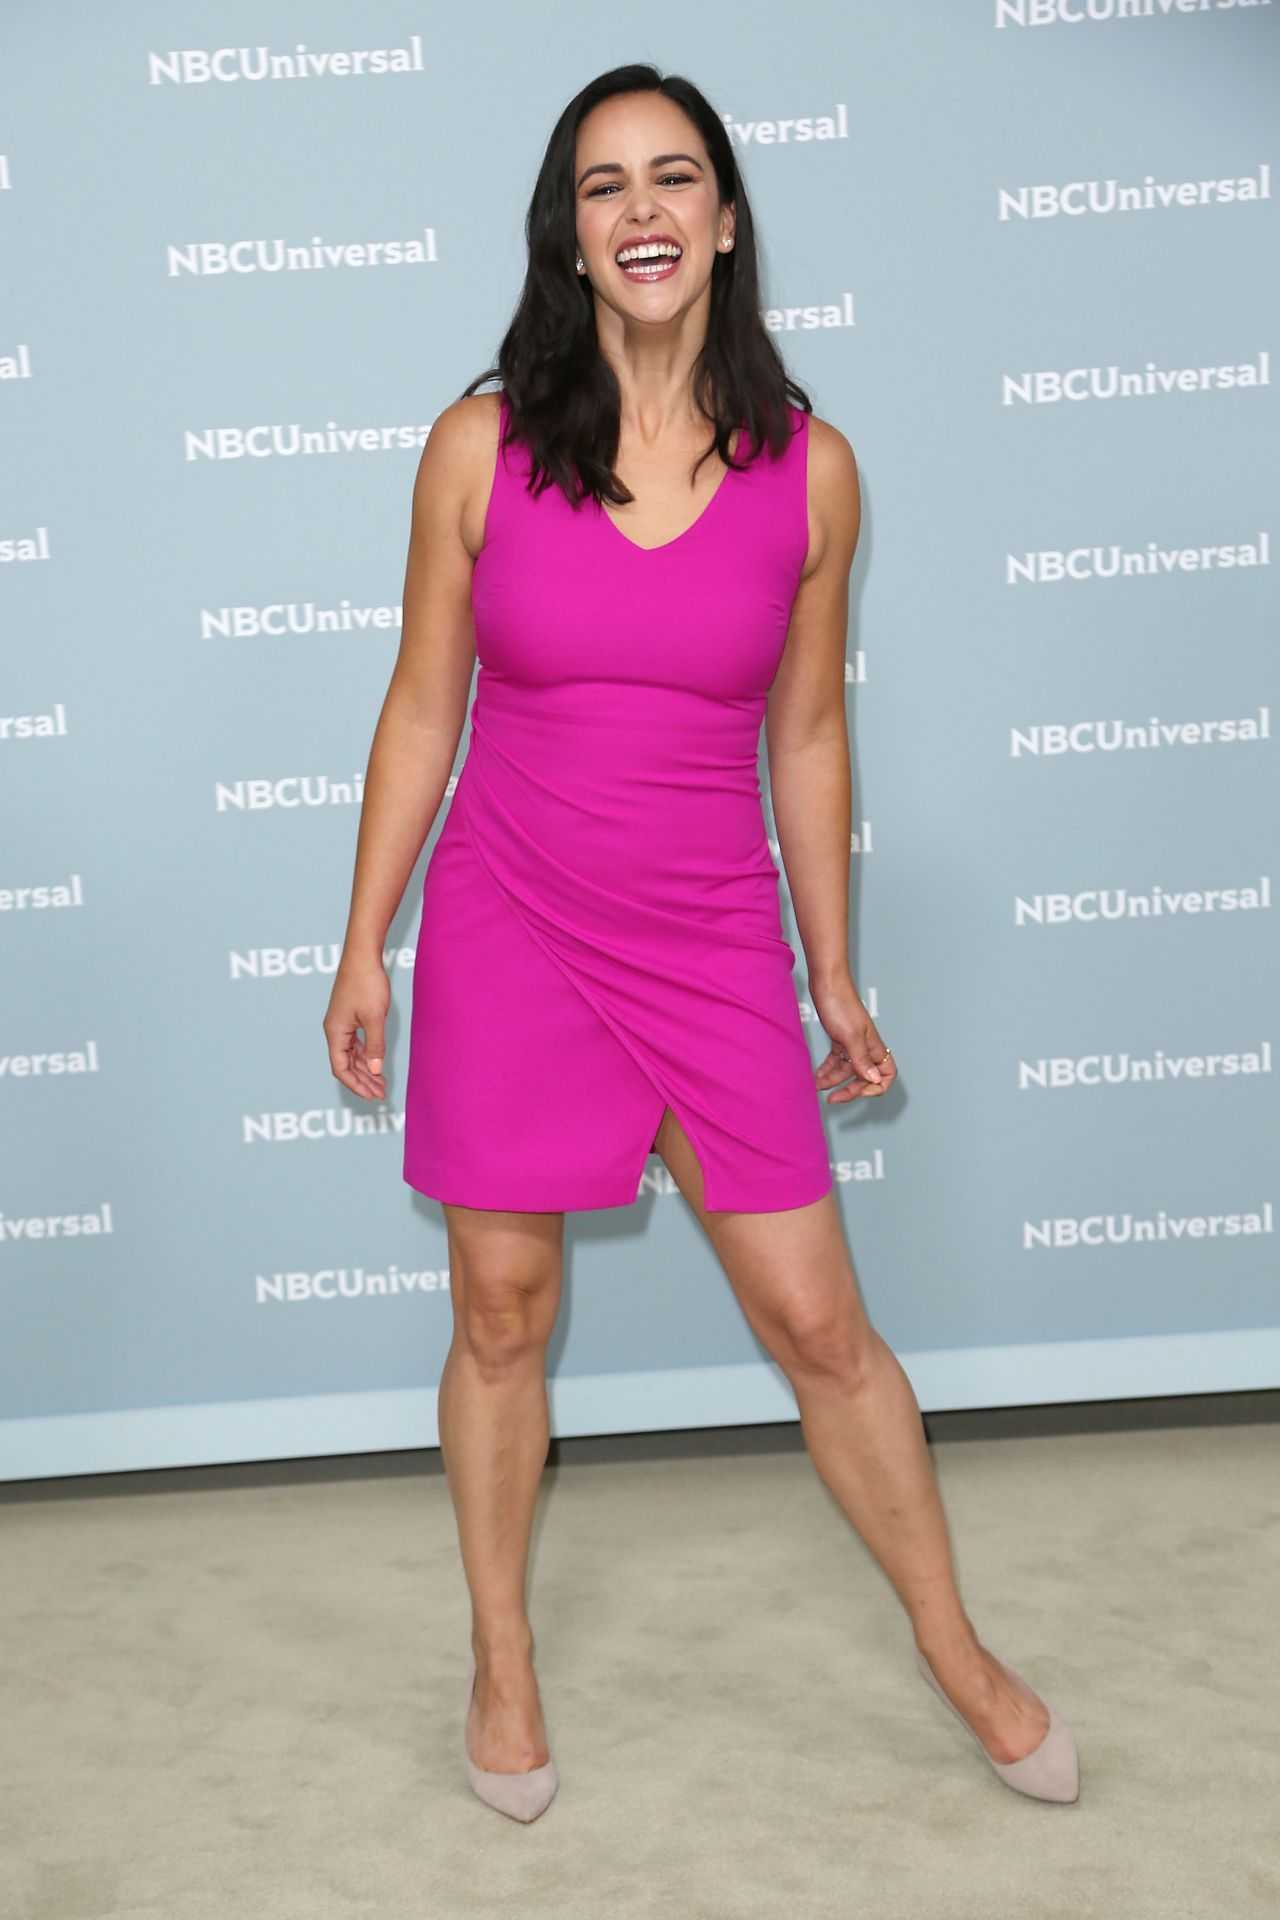 Melissa Fumero 2018 Nbcuniversal Upfront In Nyc